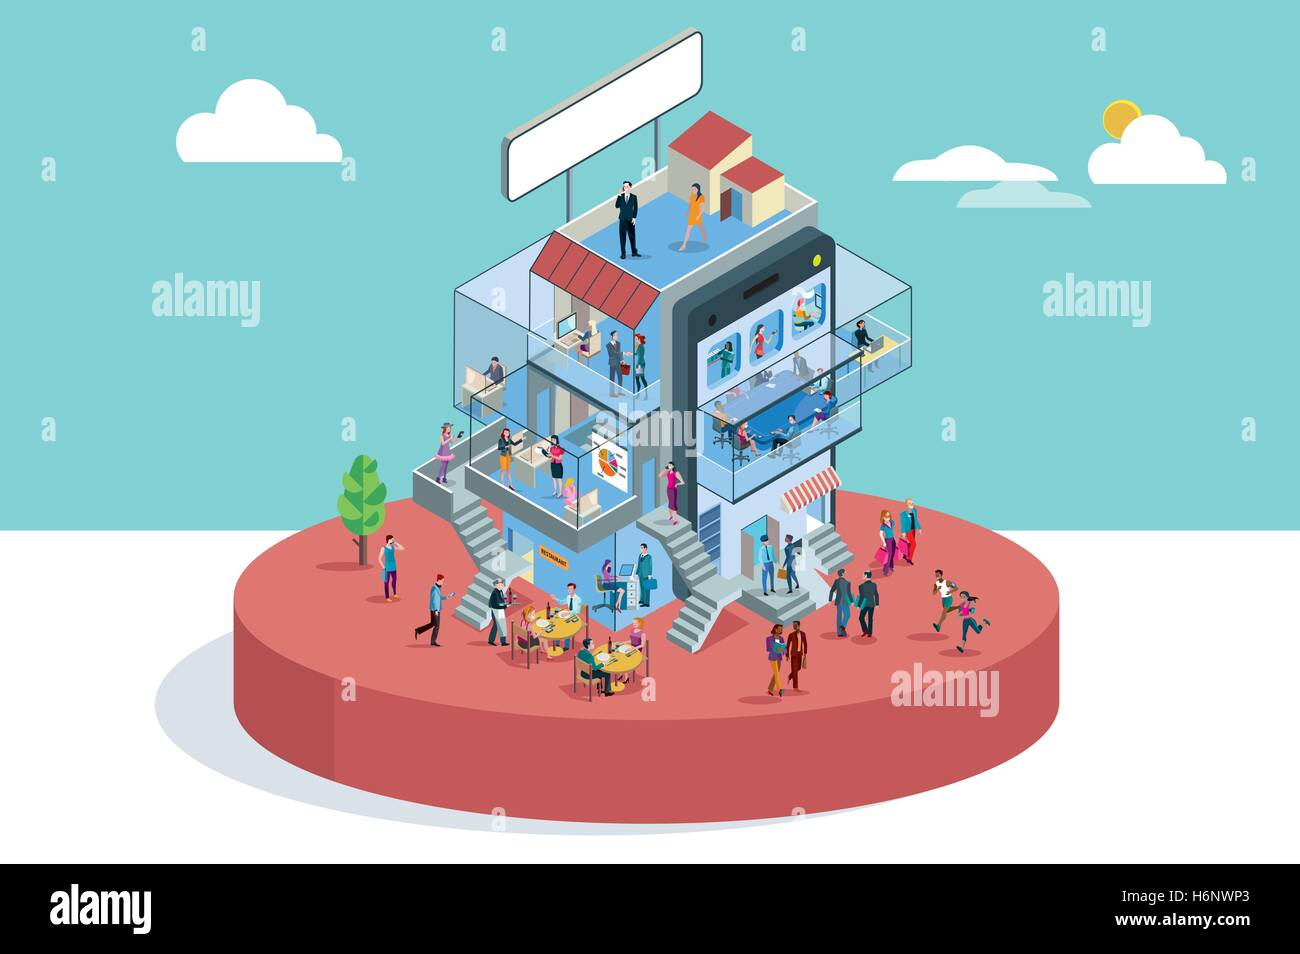 Modern Office Building In Isometric View with businessman and businesswoman working in different departments. Business Stock Vector